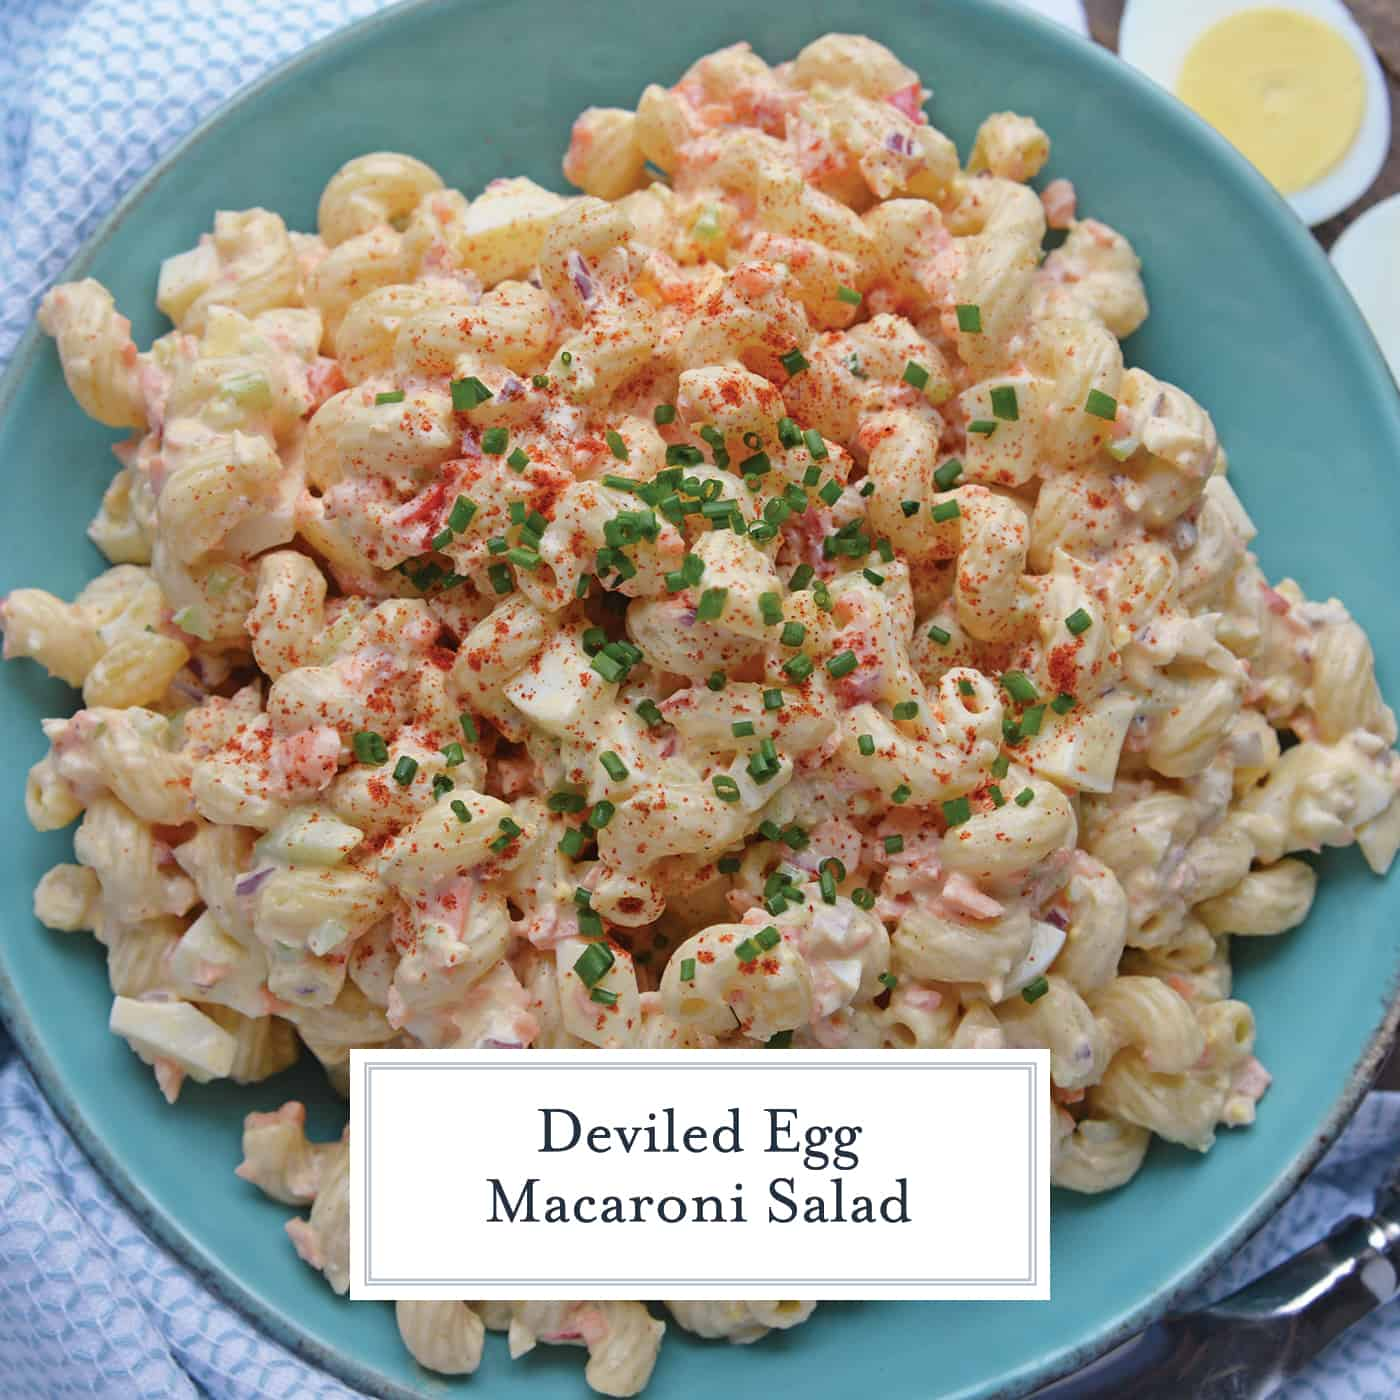 Overhead view of Deviled Egg Macaroni Salad in a blue bowl